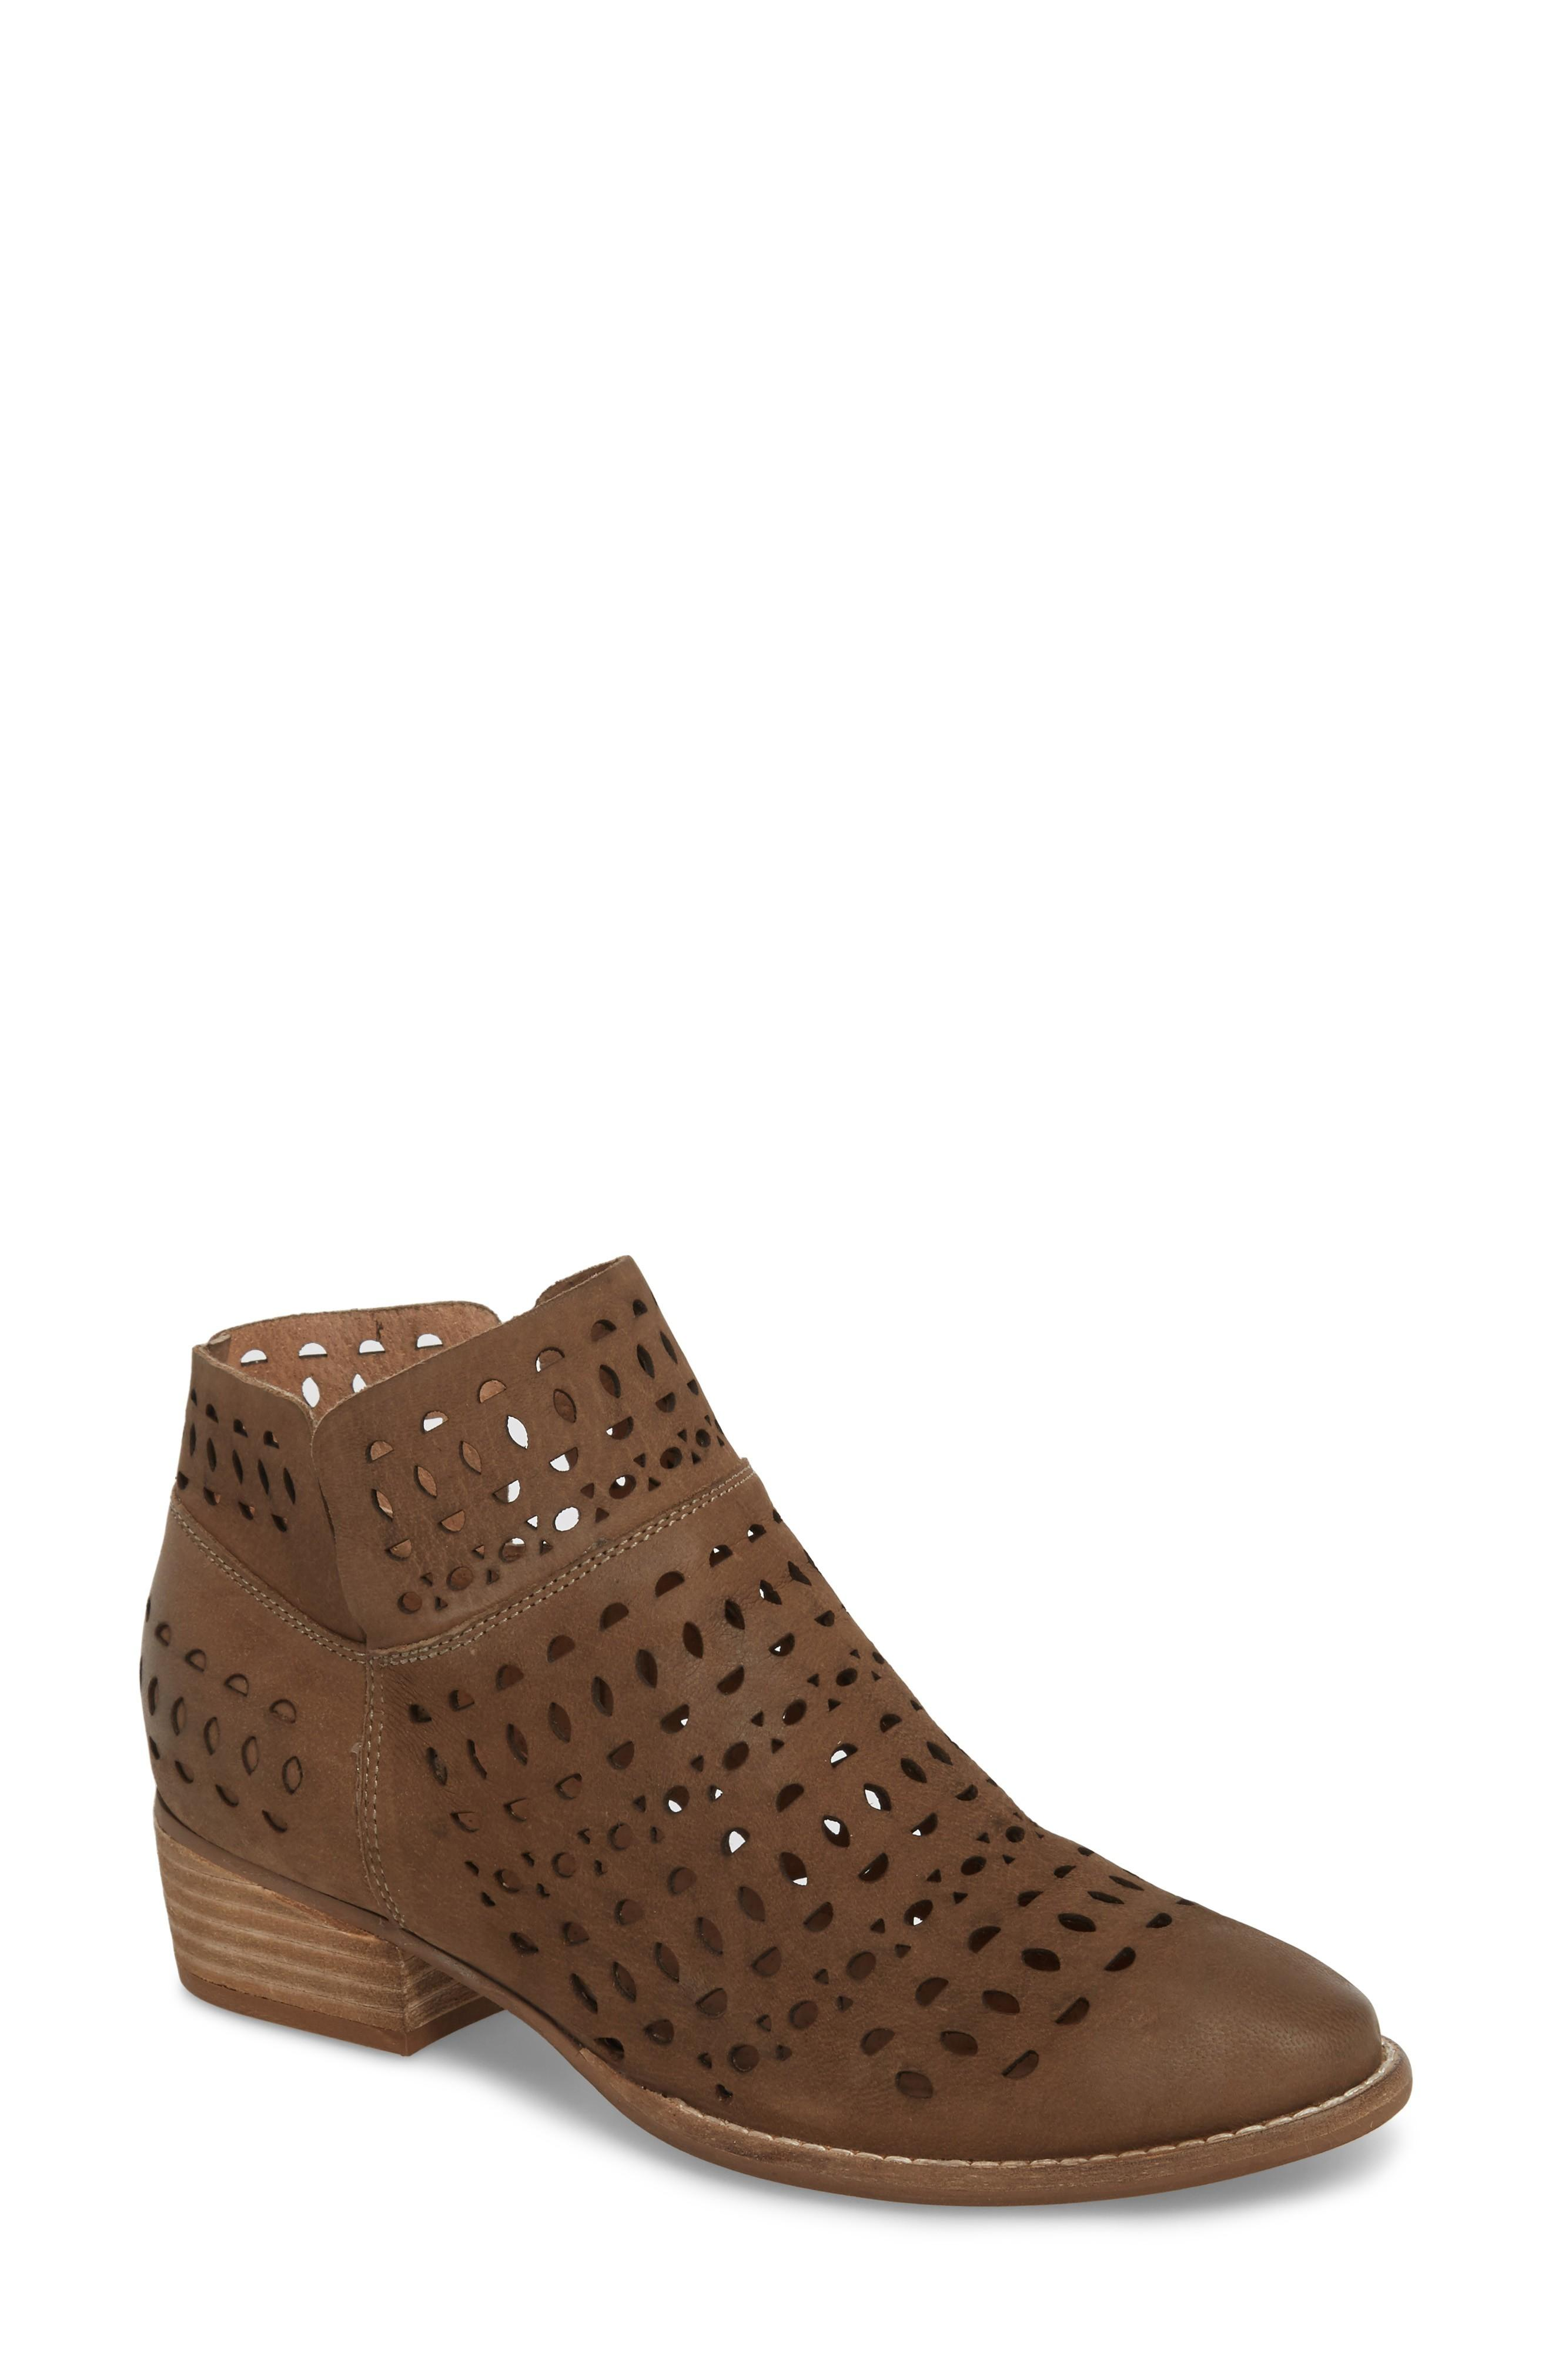 Seychelles Tame Me Bootie In Taupe